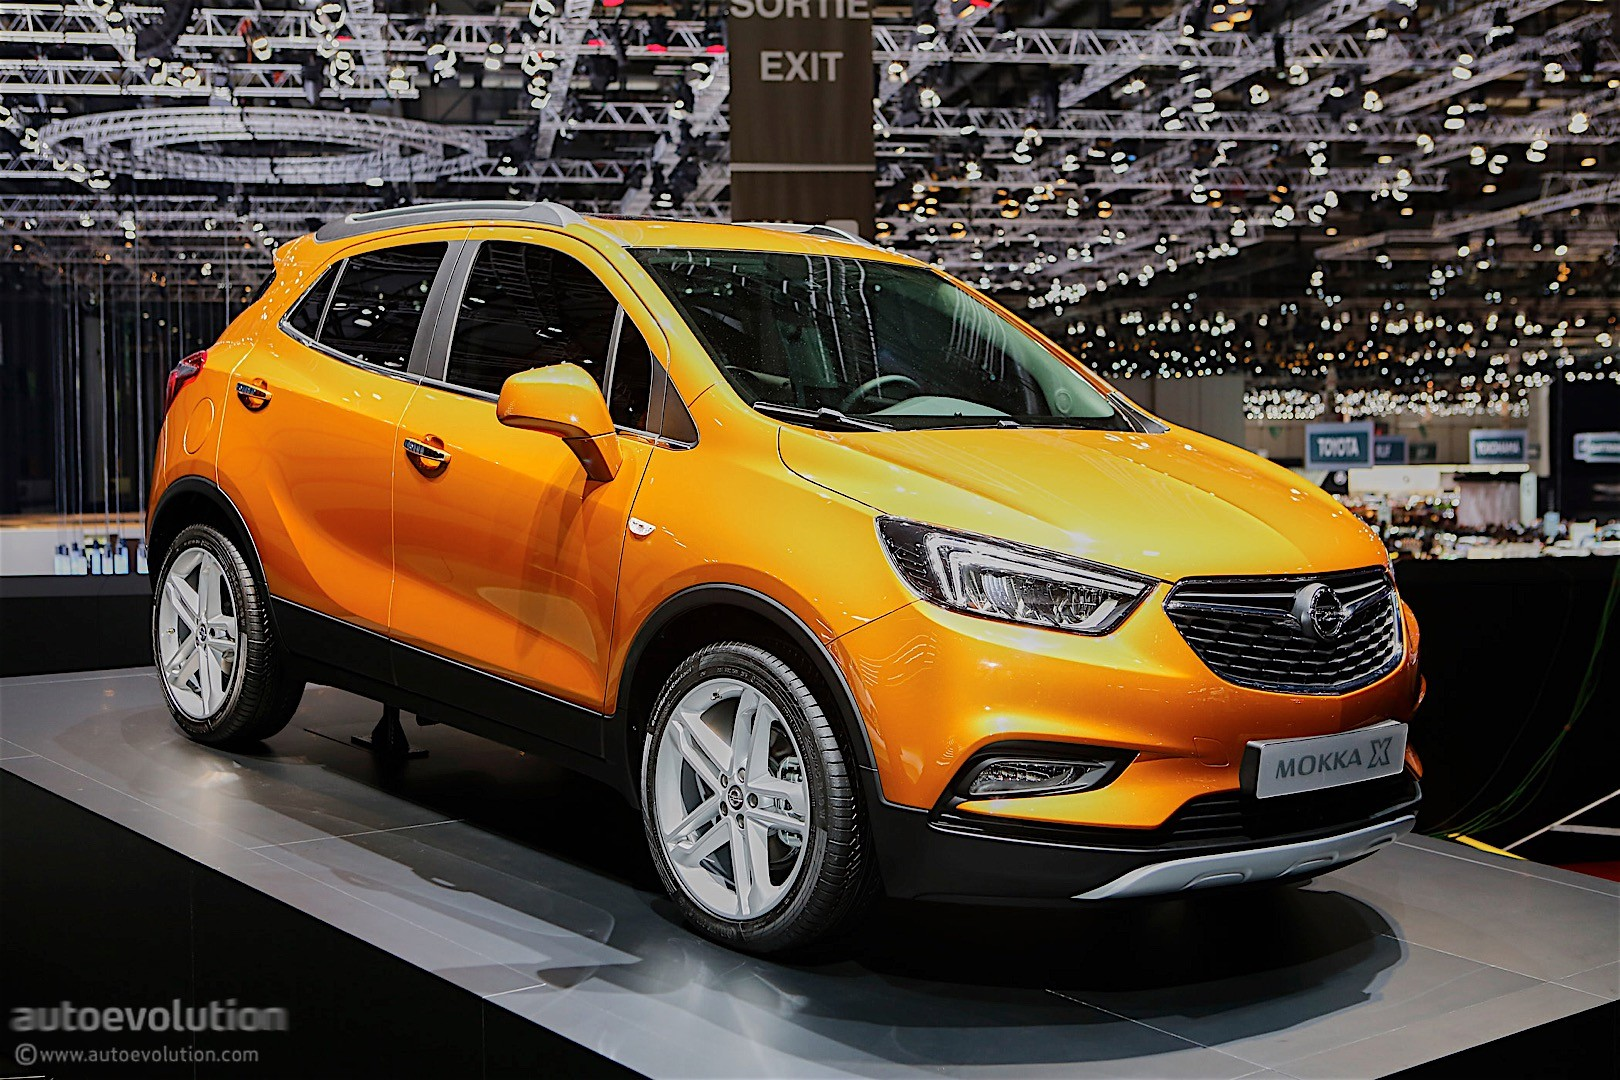 2016 opel mokka x priced in germany from 18 990. Black Bedroom Furniture Sets. Home Design Ideas